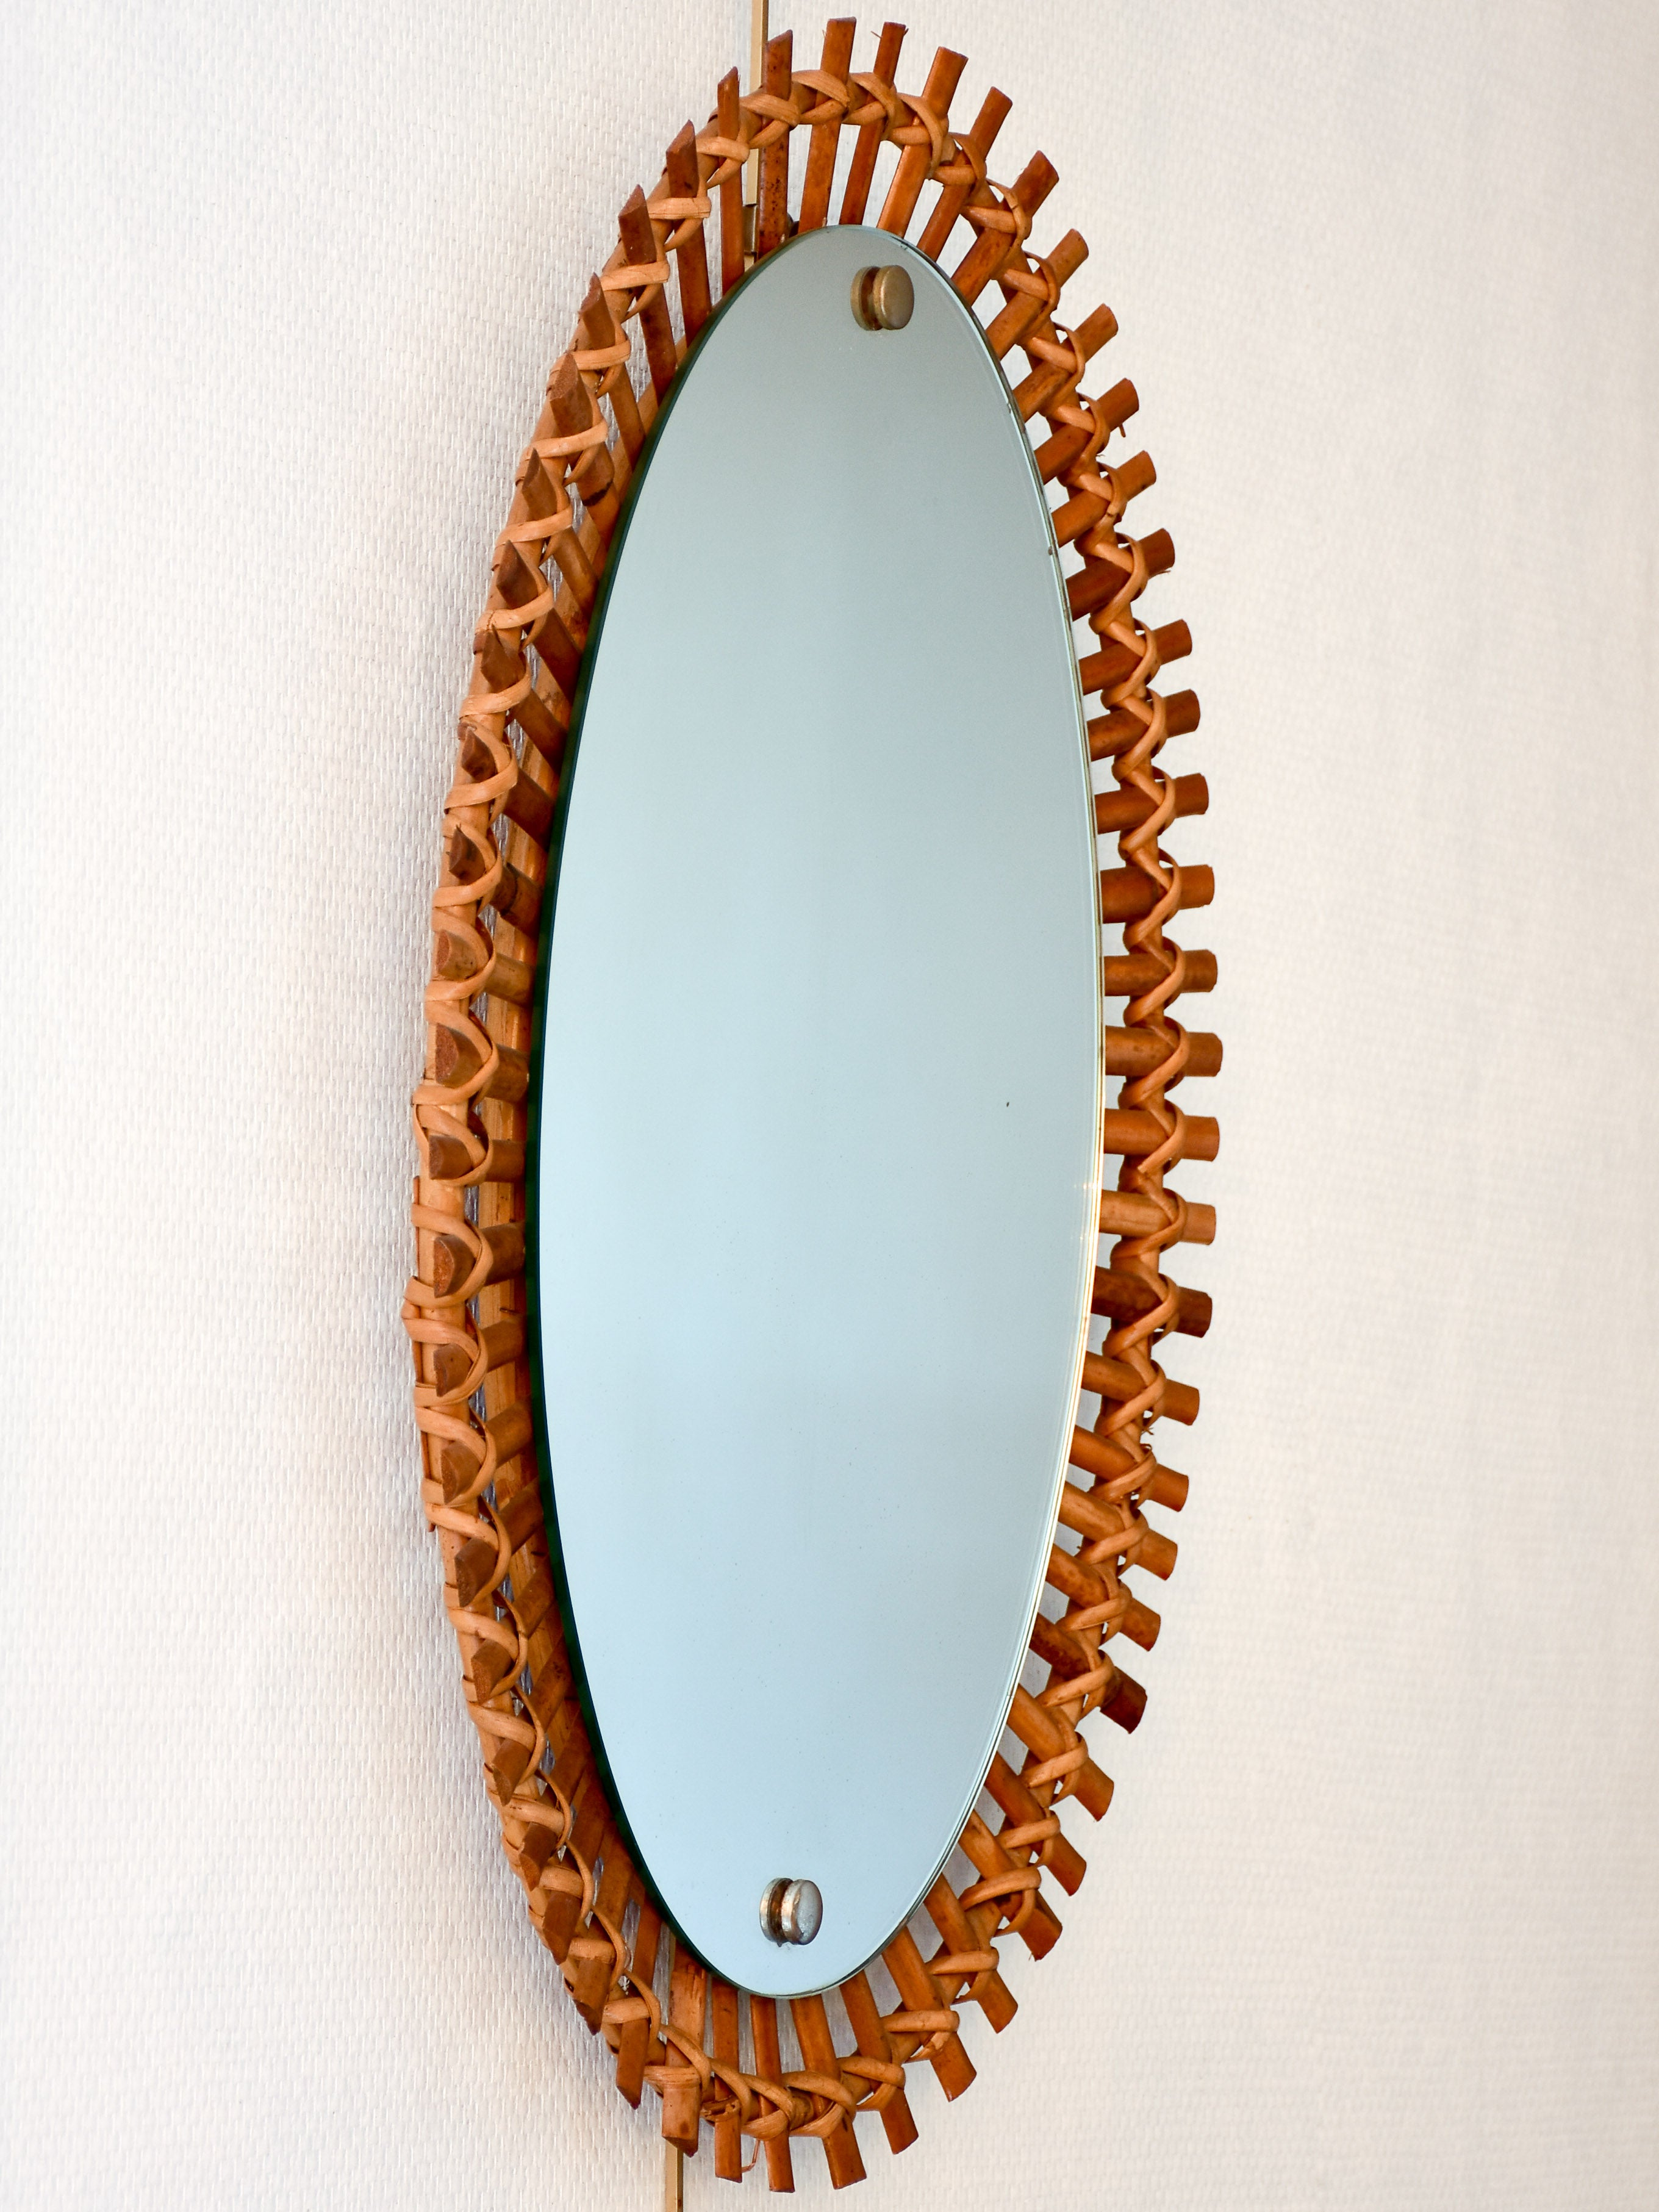 Vintage French oval mirror with rattan and bamboo frame